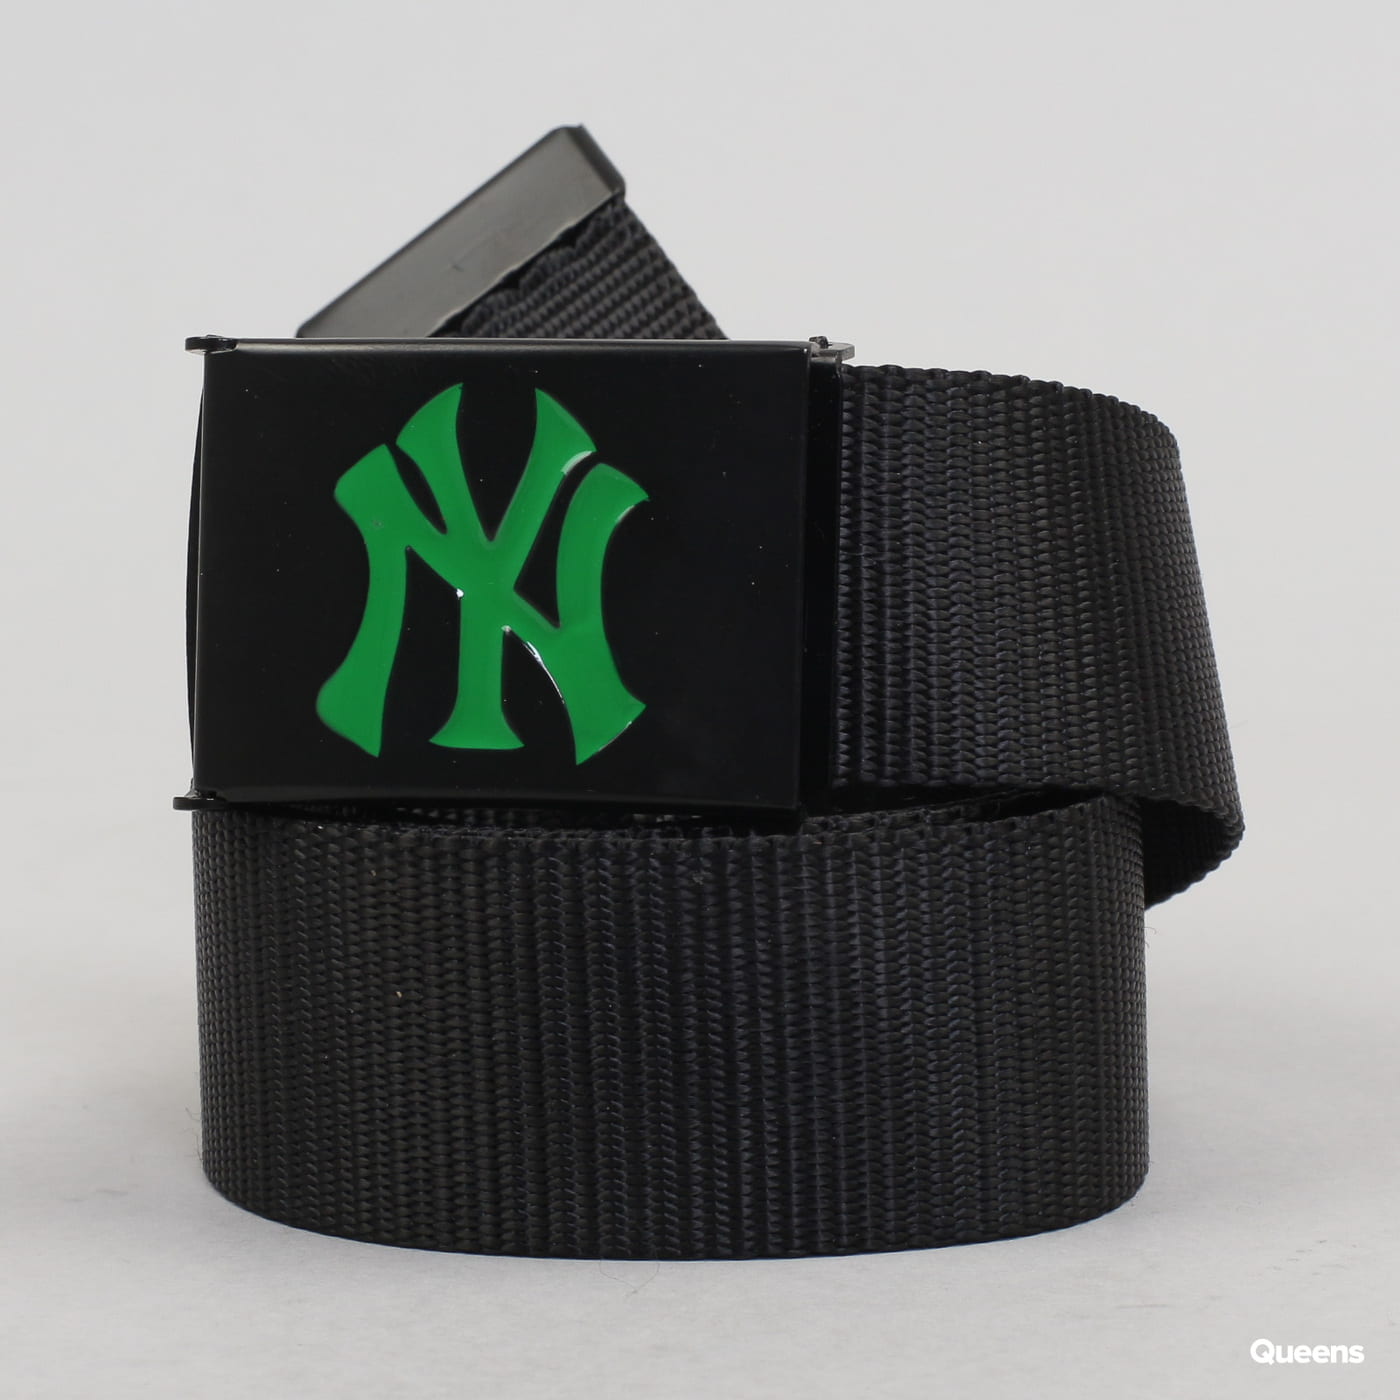 MD MLB Premium Black Woven Belt Single NY schwarz / dunkelgrün